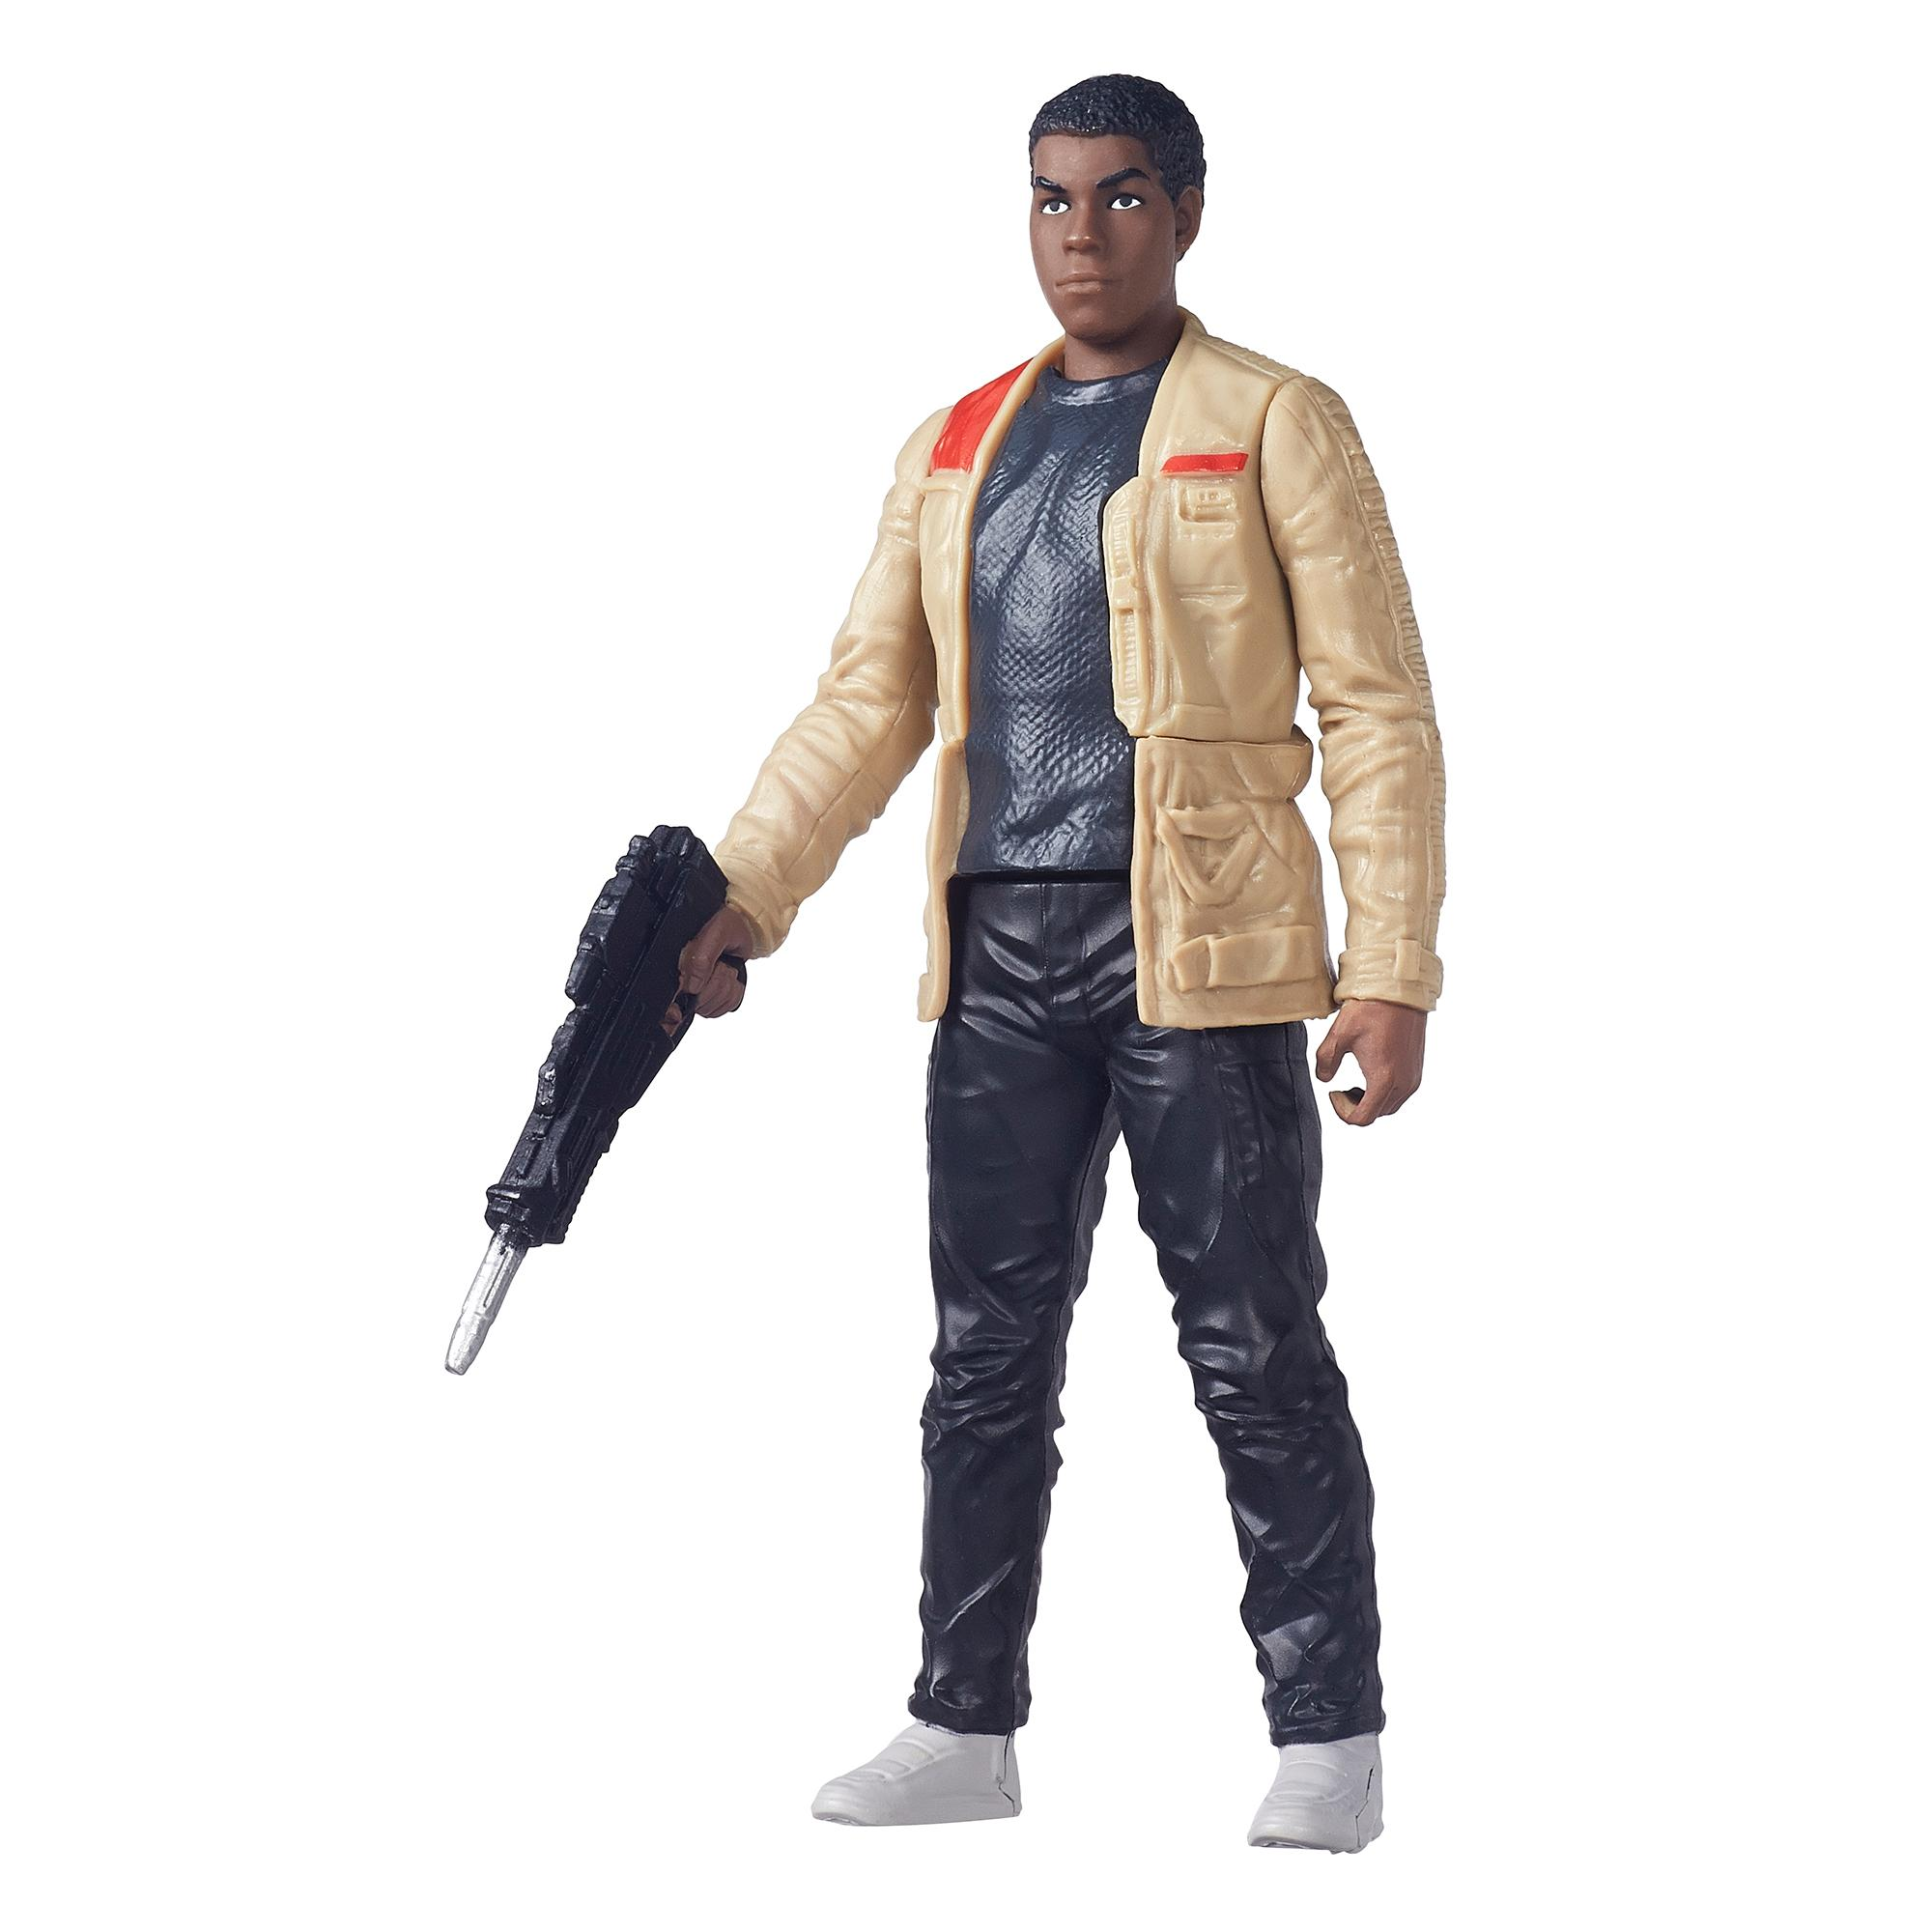 Star Wars The Force Awakens 6-Inch Resistance Finn (Jakku)